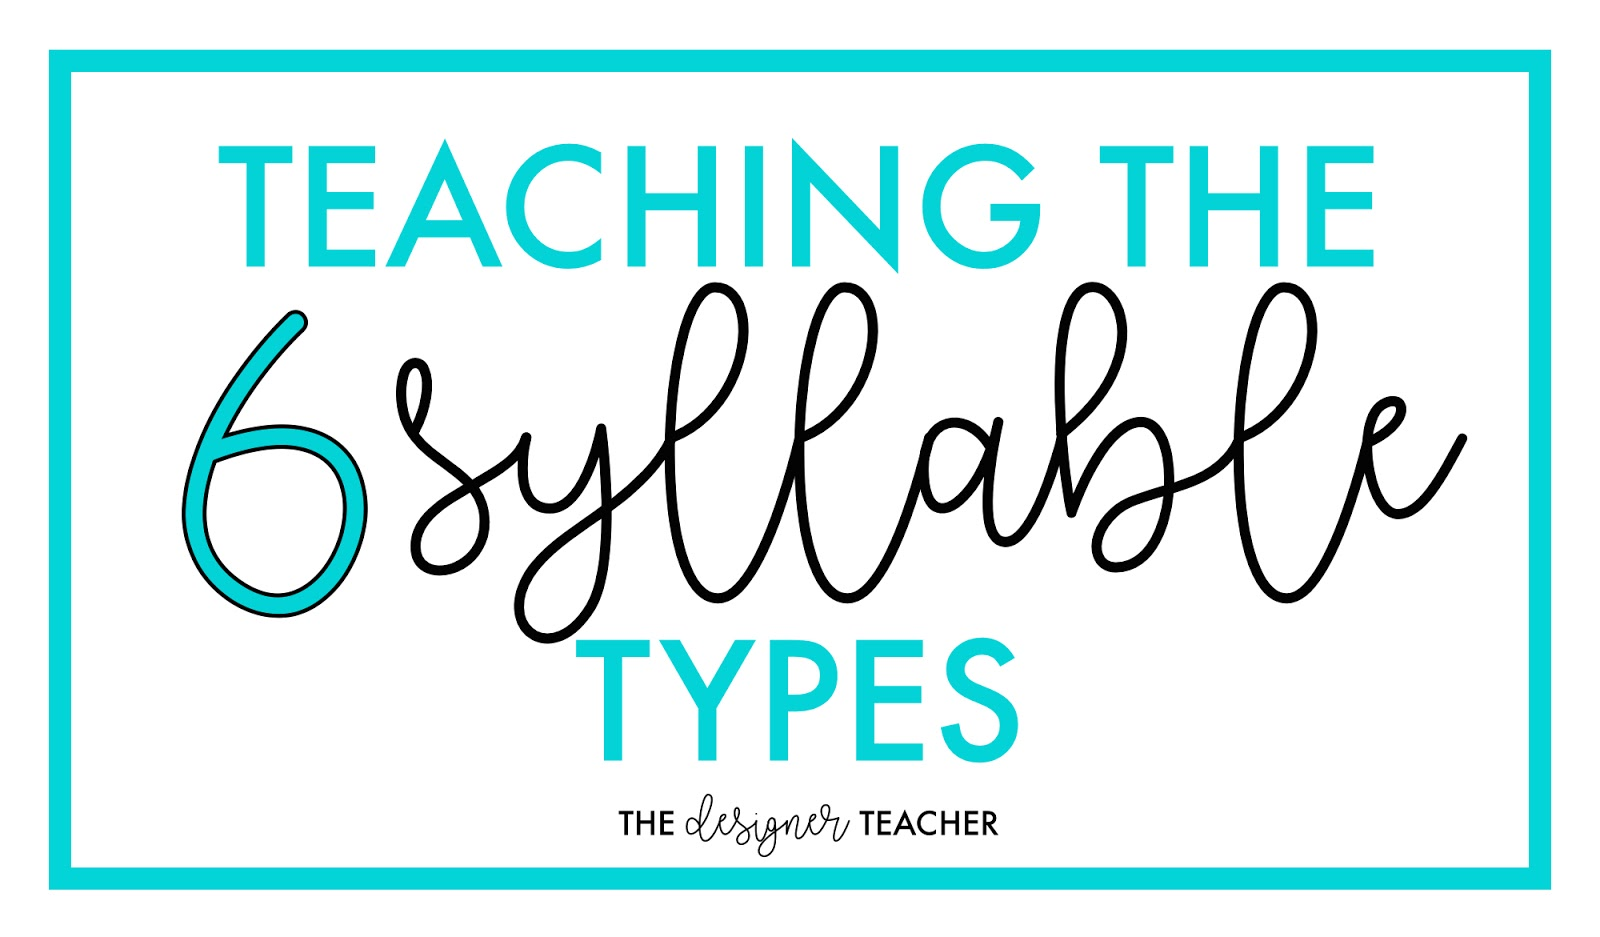 The Designer Teacher Teaching The Six Syllable Types